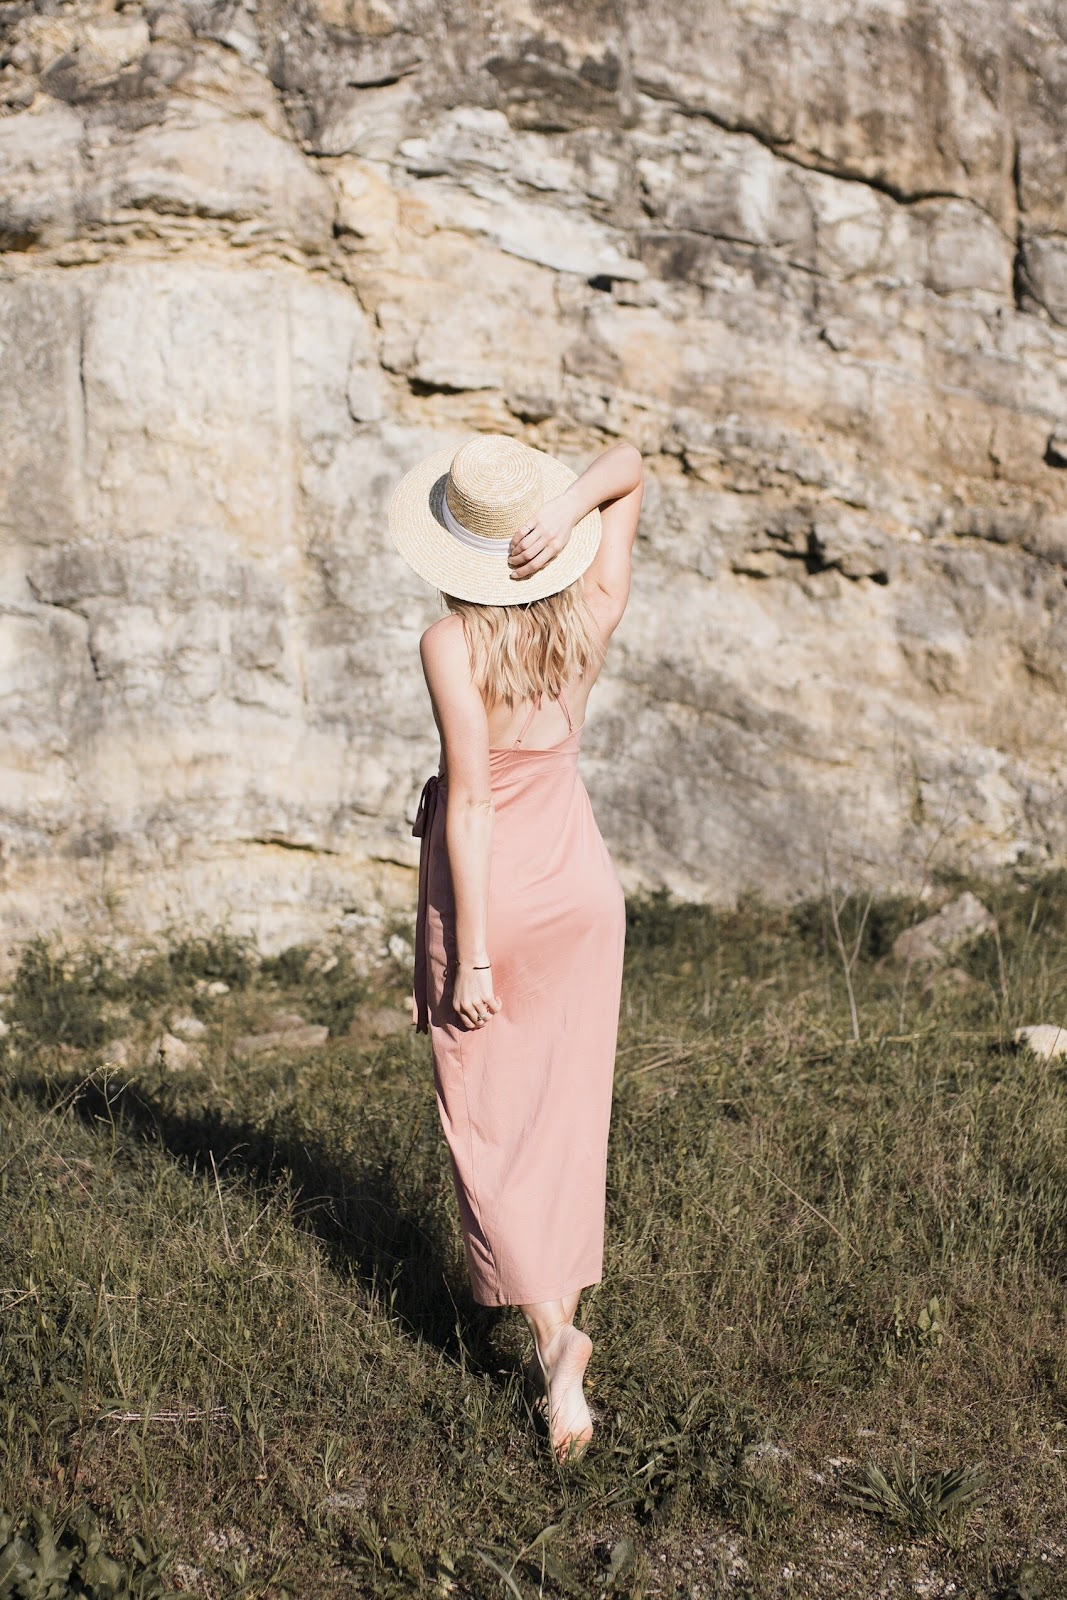 boho vibes in a pink wrap dress and straw boater hat